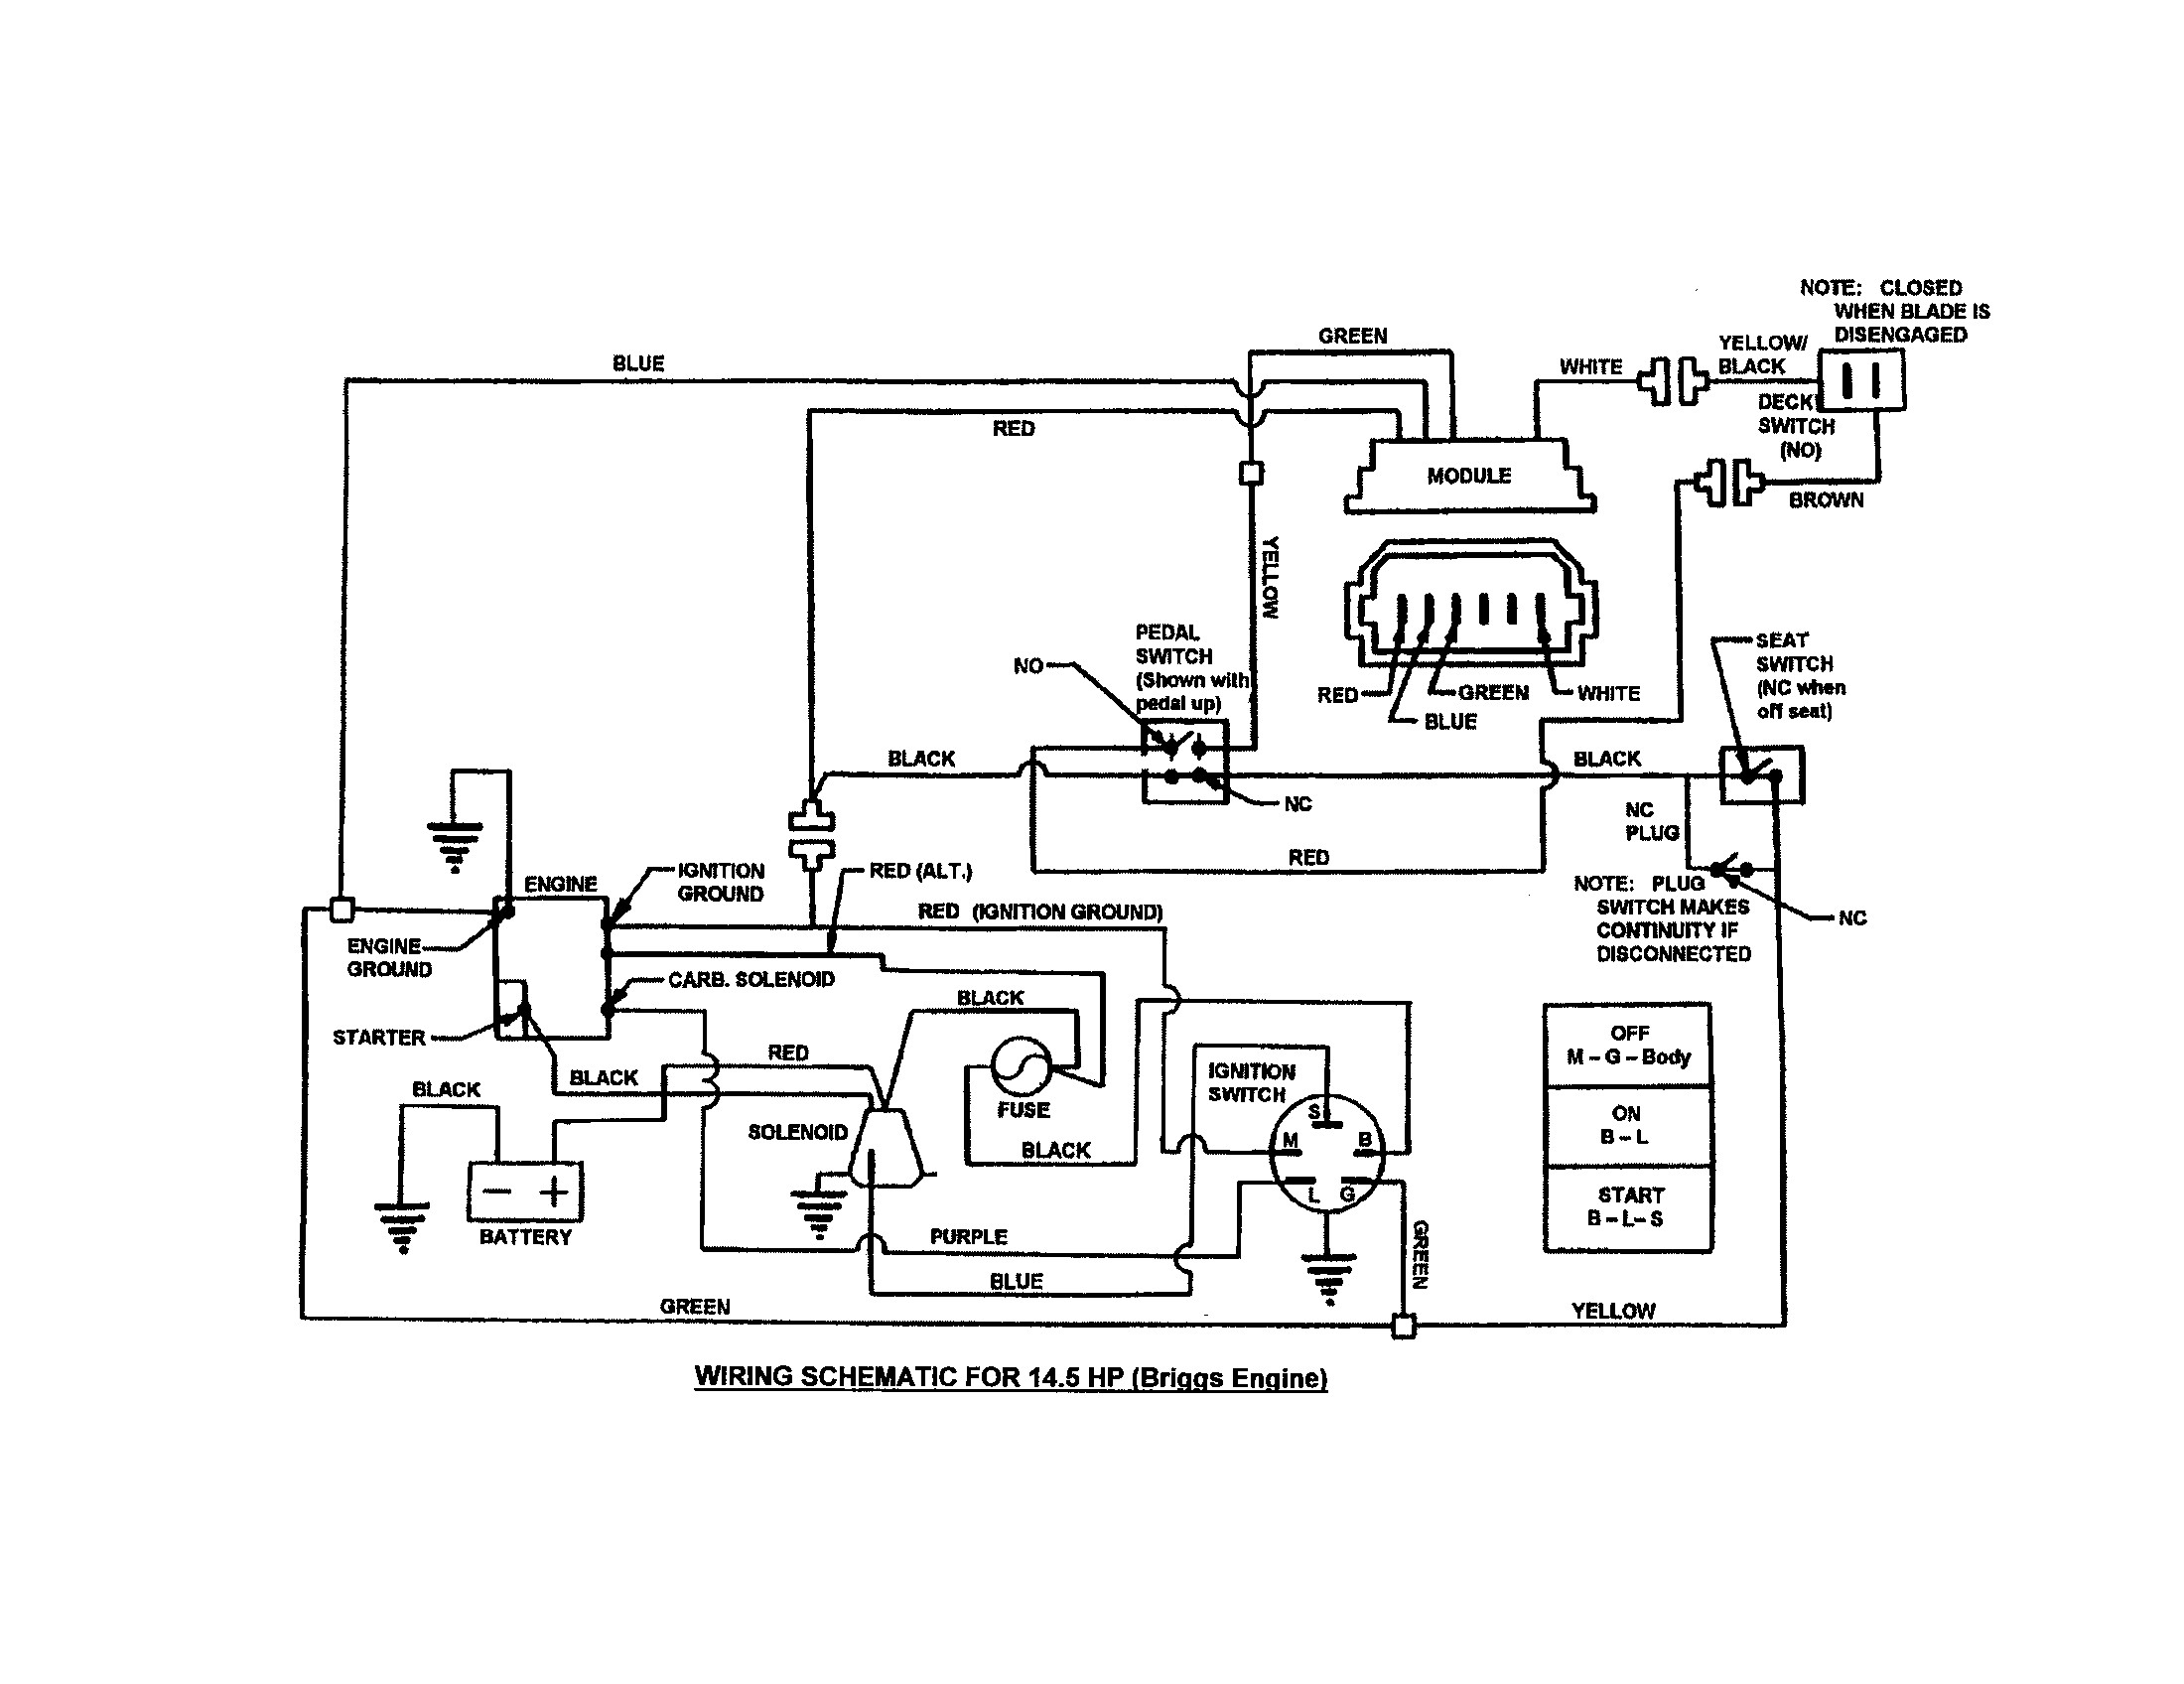 Yardman Zero Turn Wiring Diagram Wiring Wiring Diagram